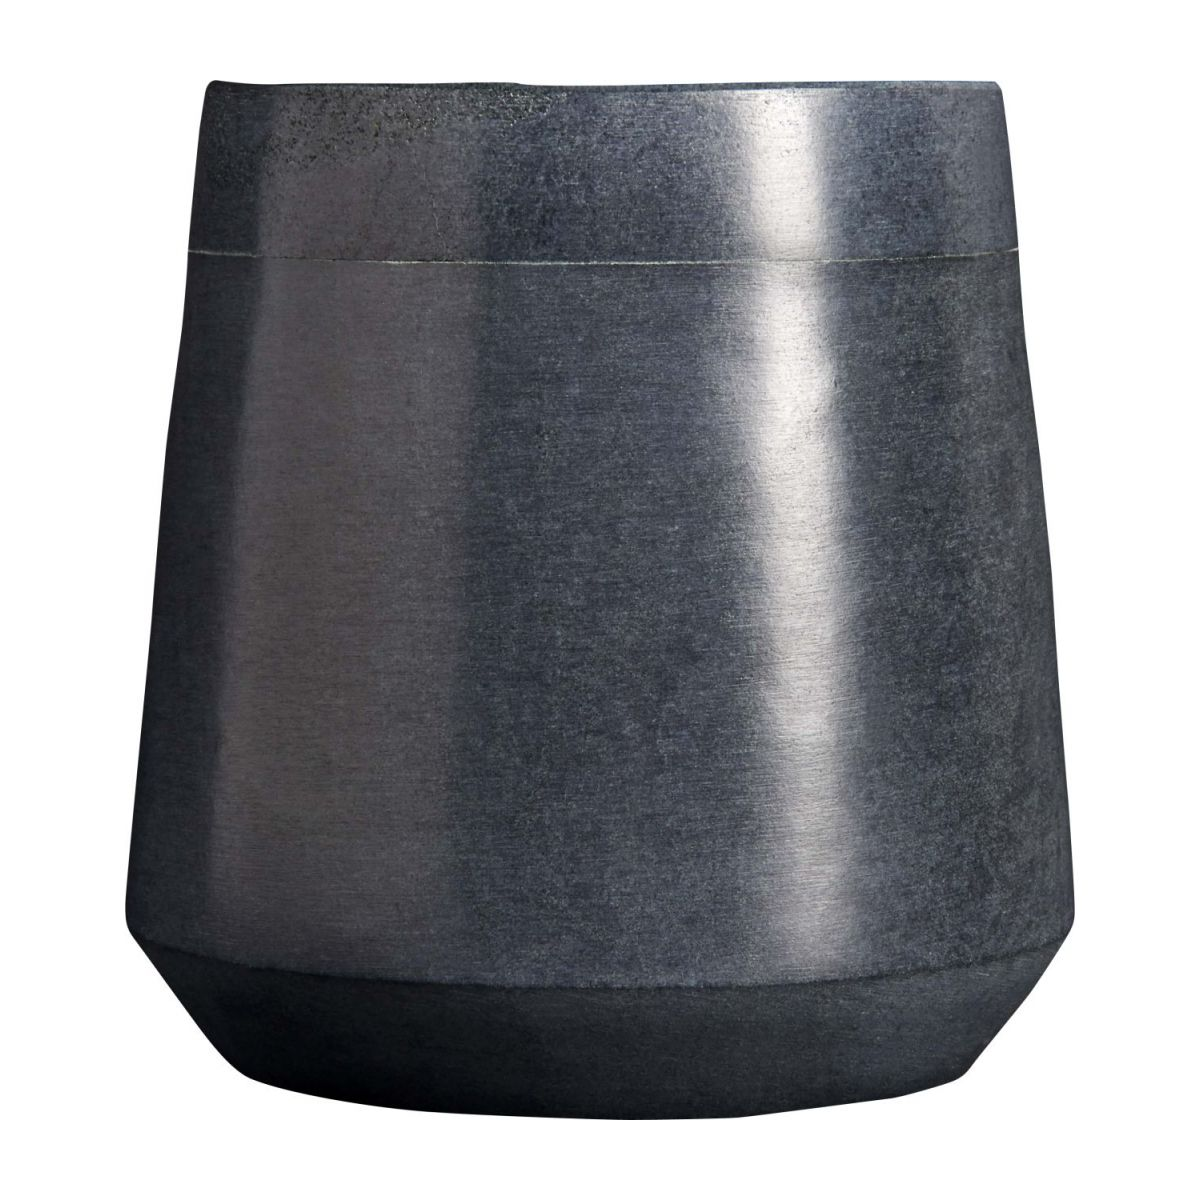 Grey soapstone coton box n°3